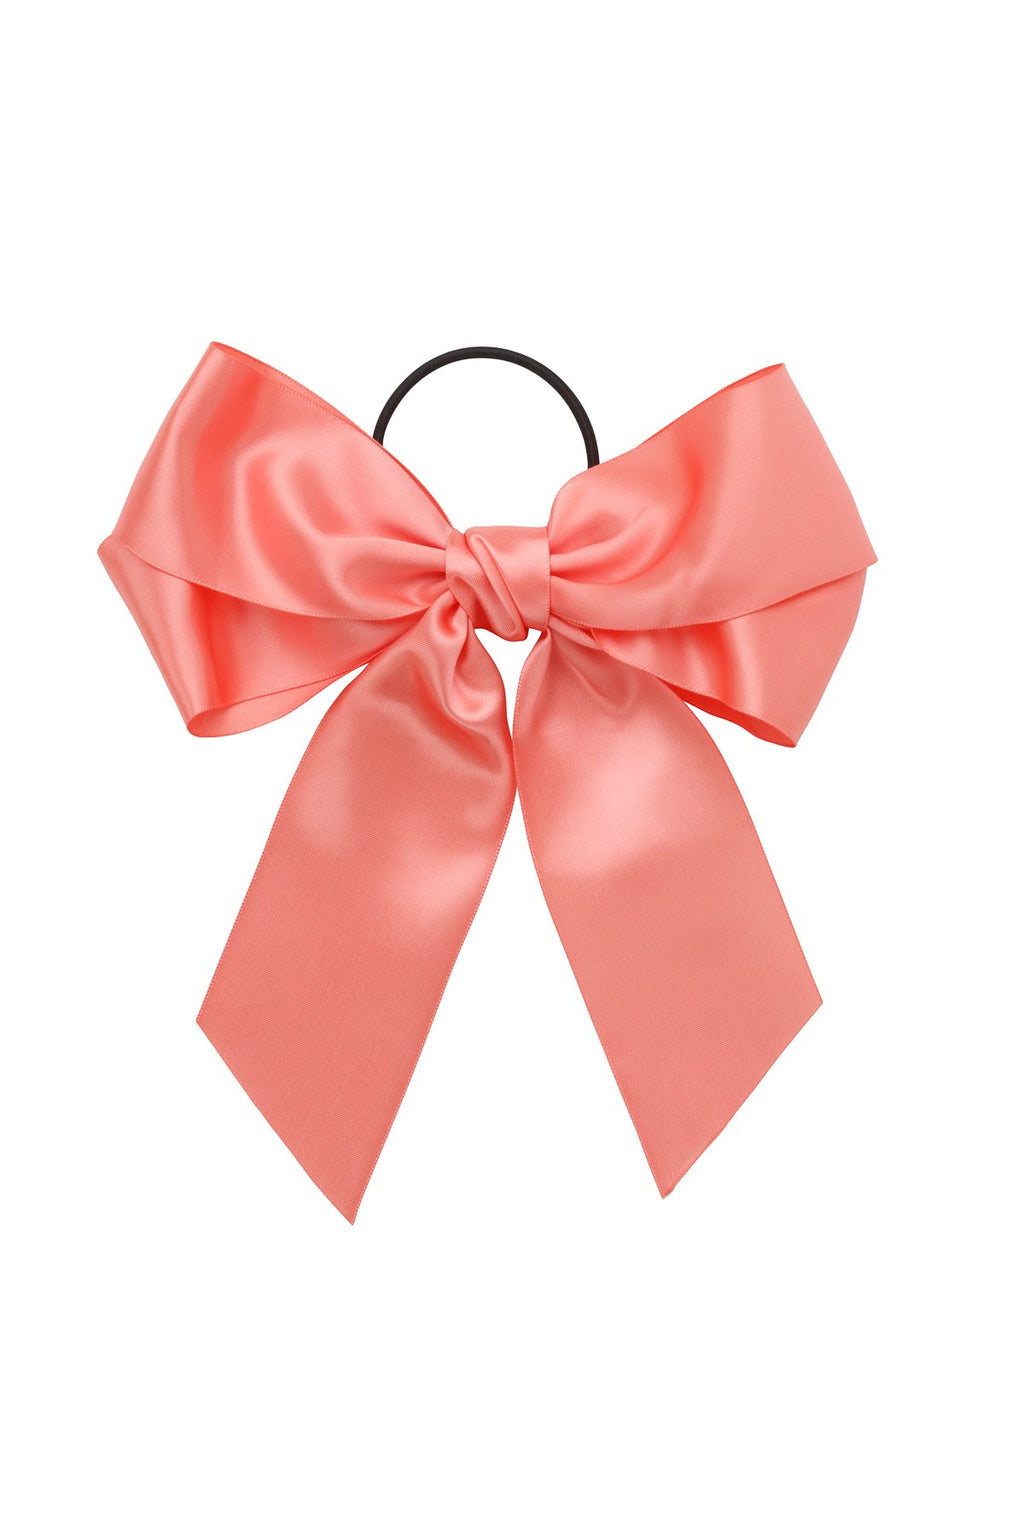 Oversized Bow Pony/Clip - Coral - PROJECT 6, modest fashion